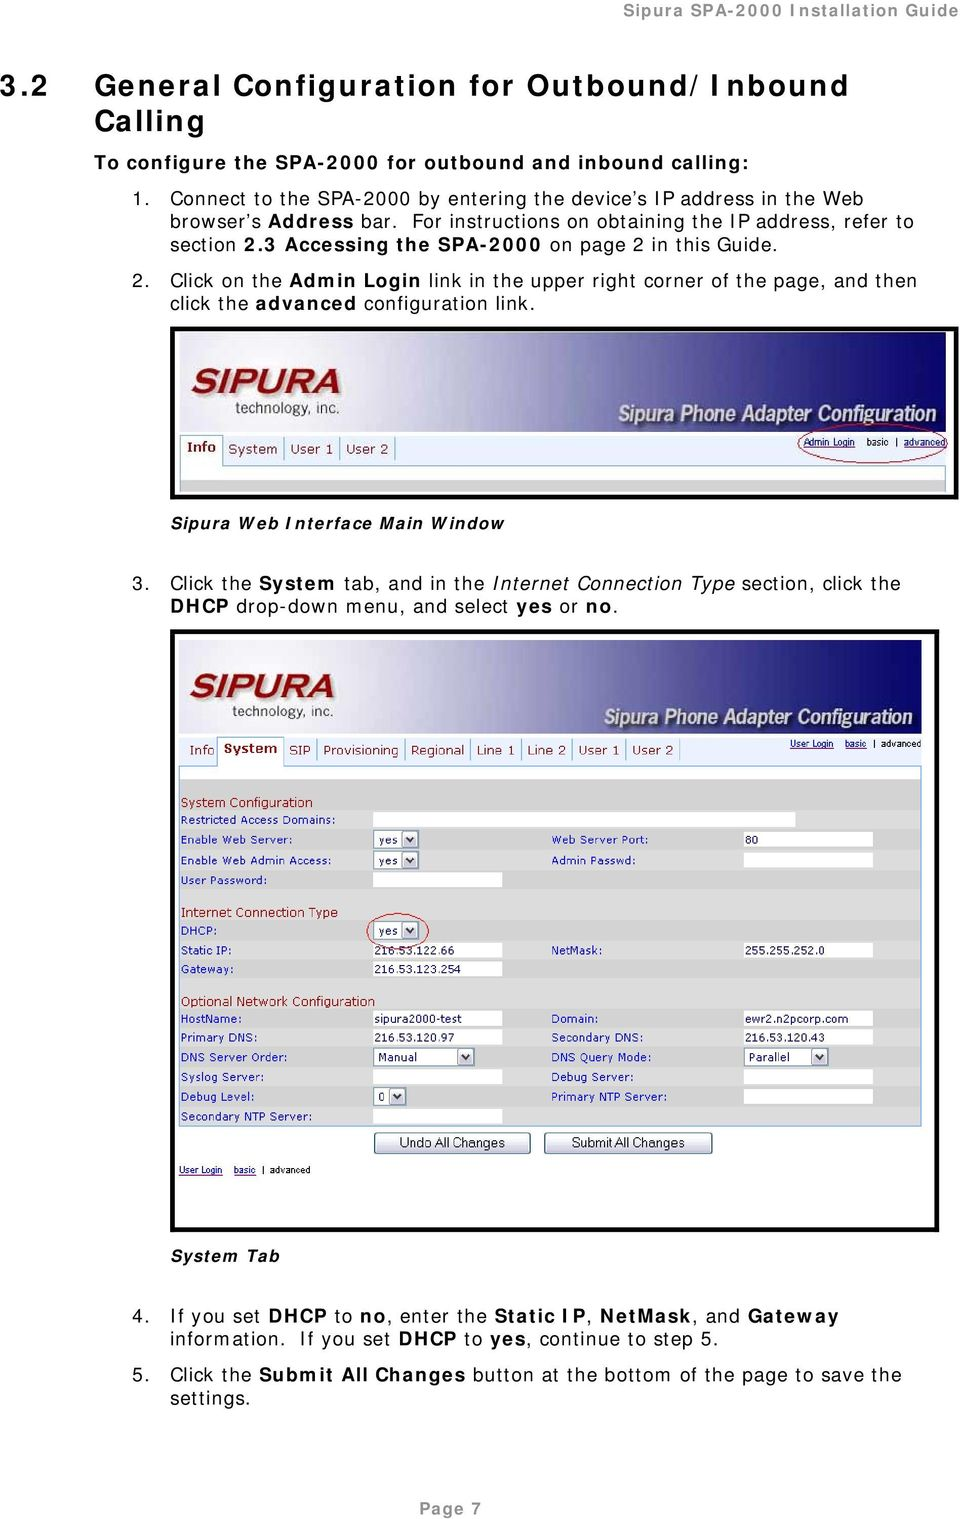 3 Accessing the SPA-2000 on page 2 in this Guide. 2. Click on the Admin Login link in the upper right corner of the page, and then click the advanced configuration link.